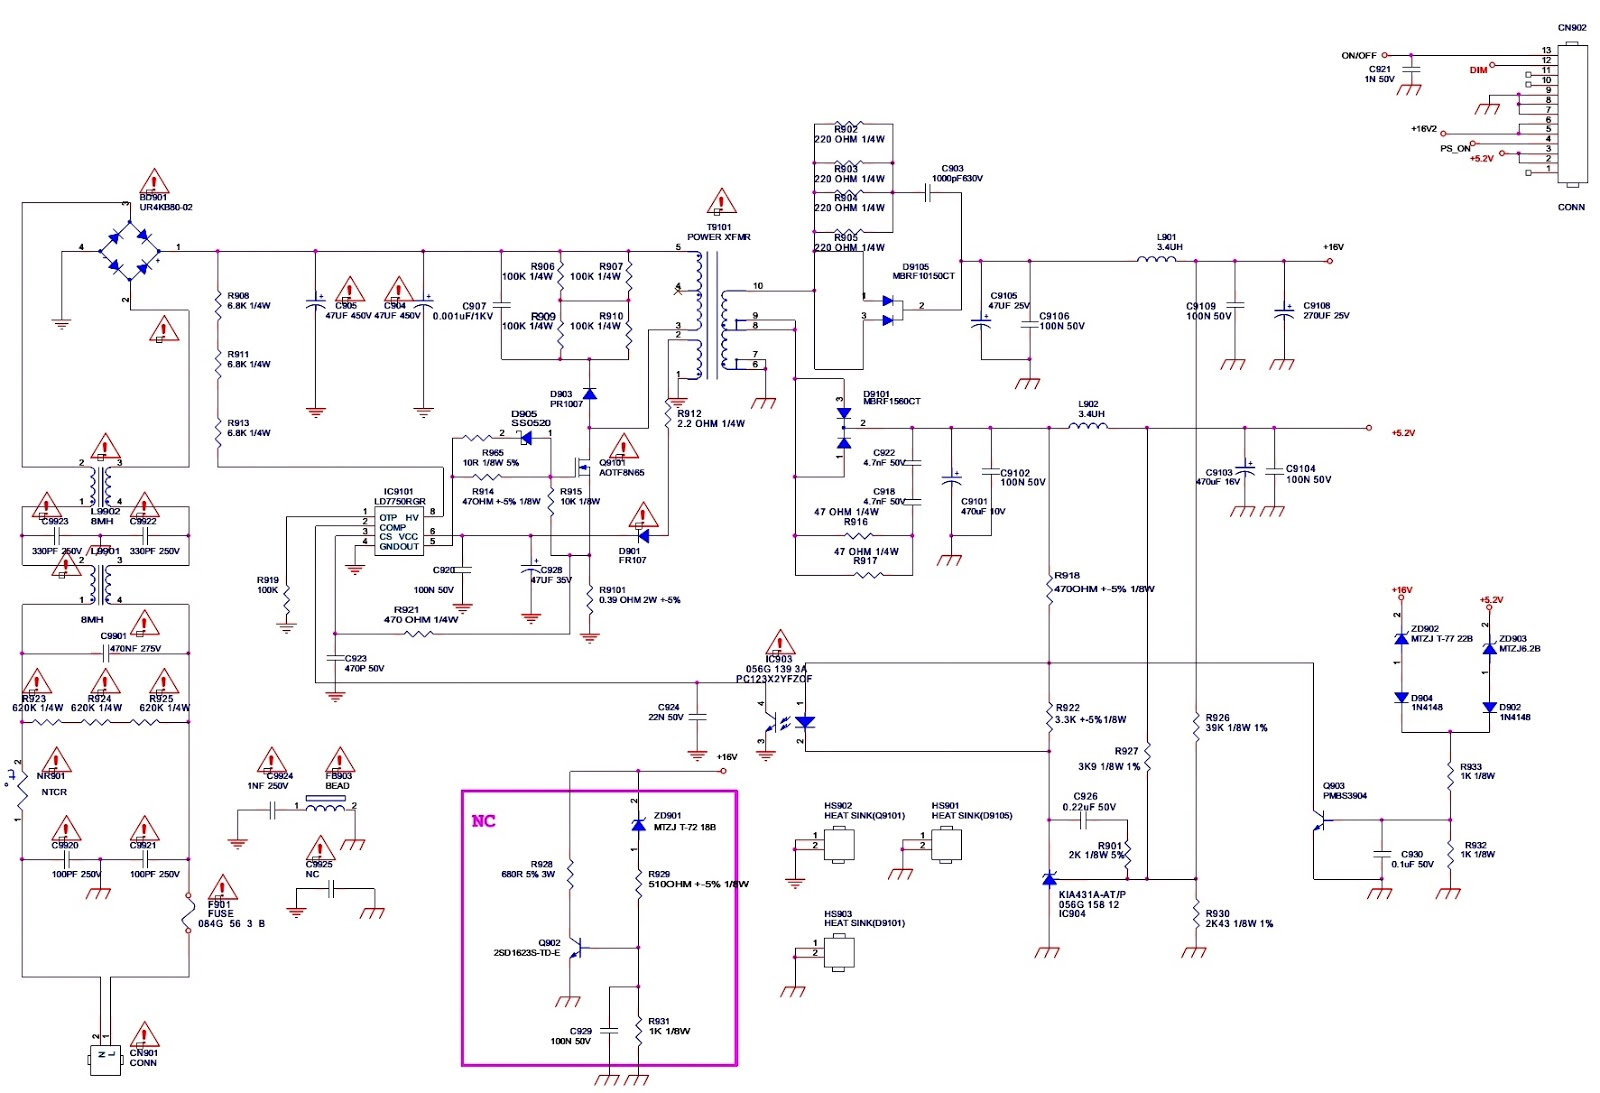 Aoc Le22h158 Led Tv Power And Driver Schematic Electro Help Click On The Schematics To Zoom In